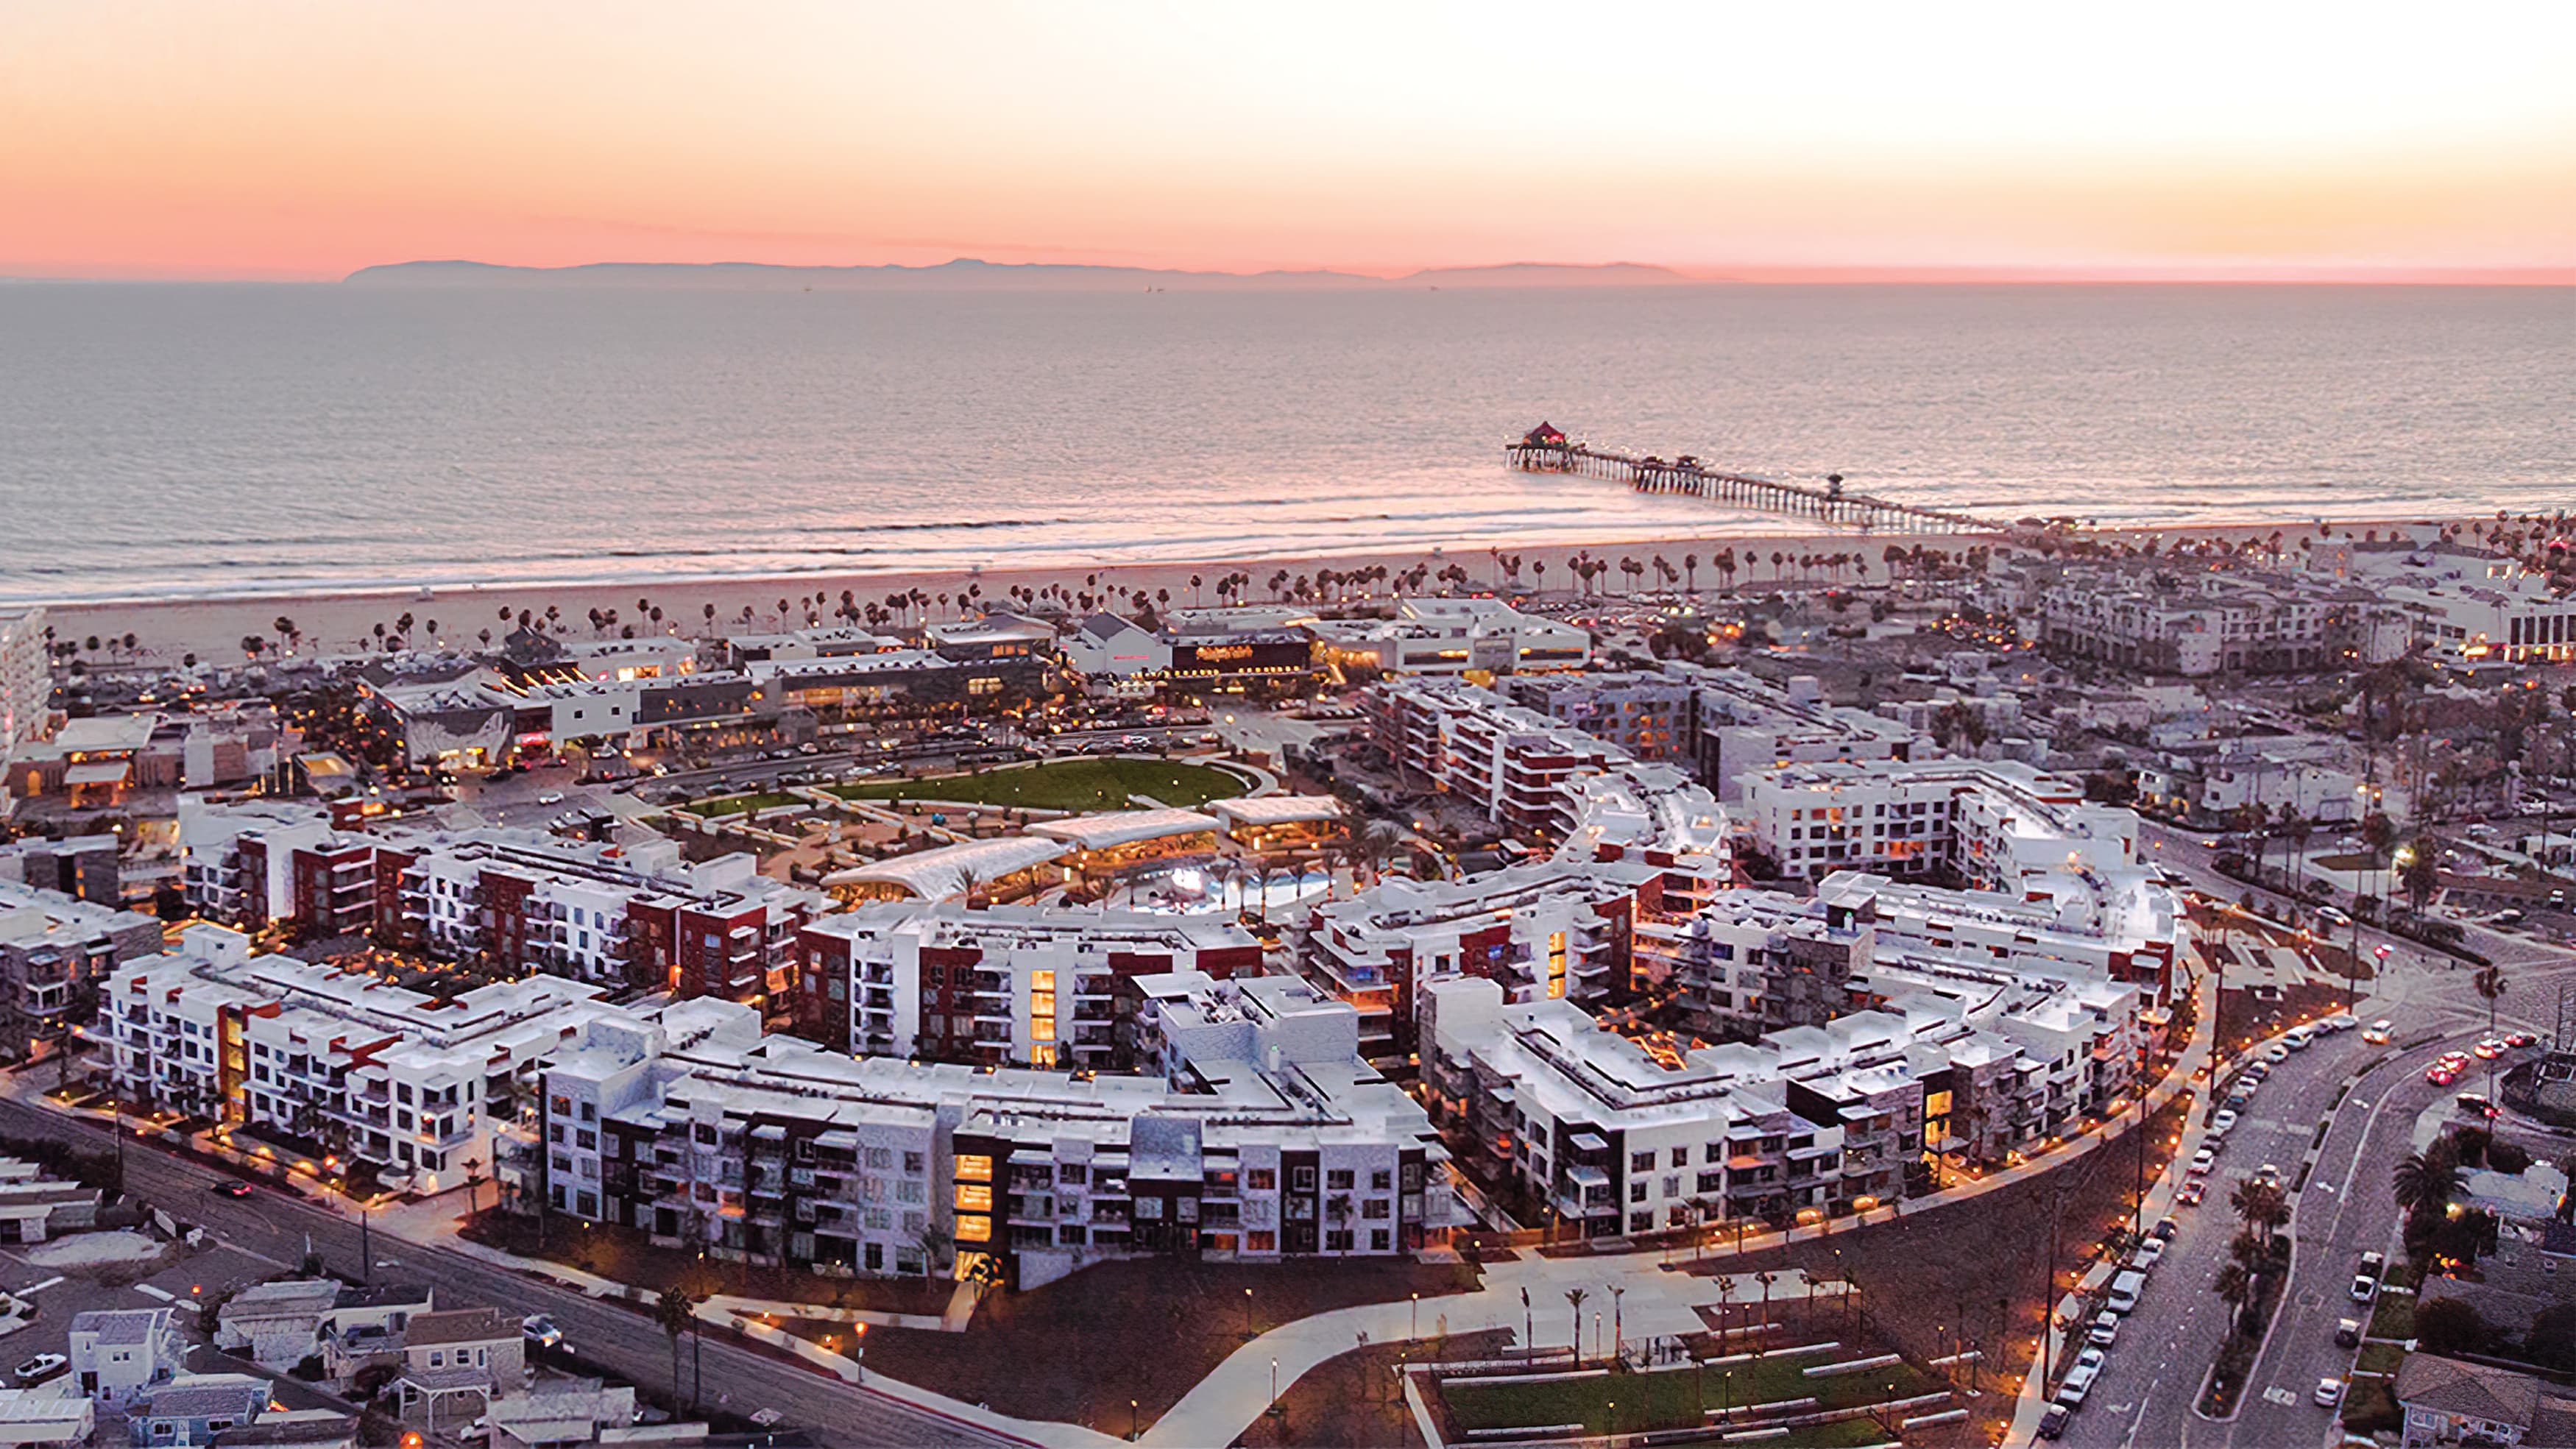 Aerial view of the Residences at Pacific City and ocean at sundown